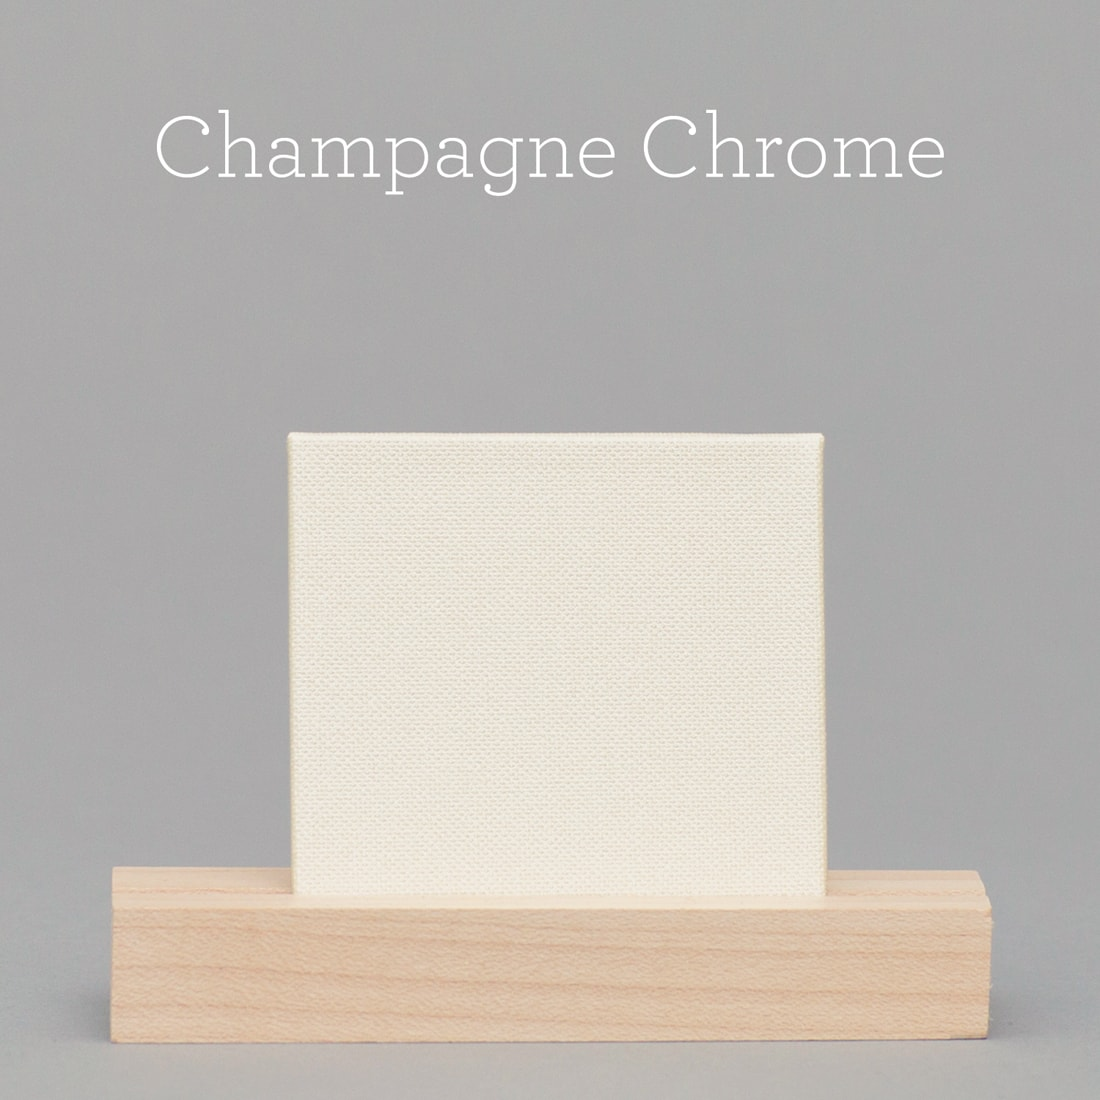 ChampagneChrome